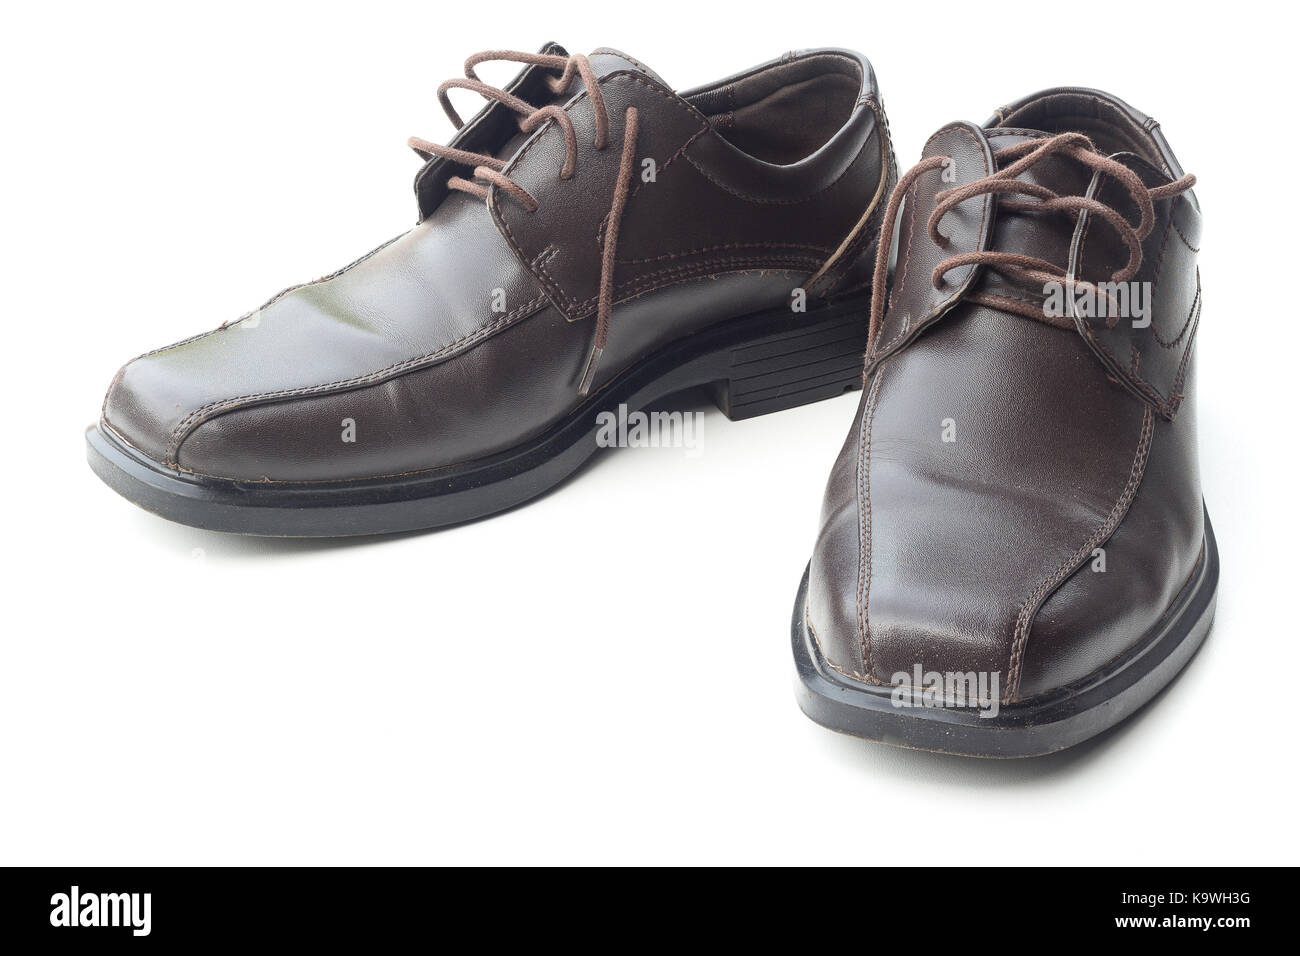 Dark brown leather men's shoes isolated on white background - Stock Image